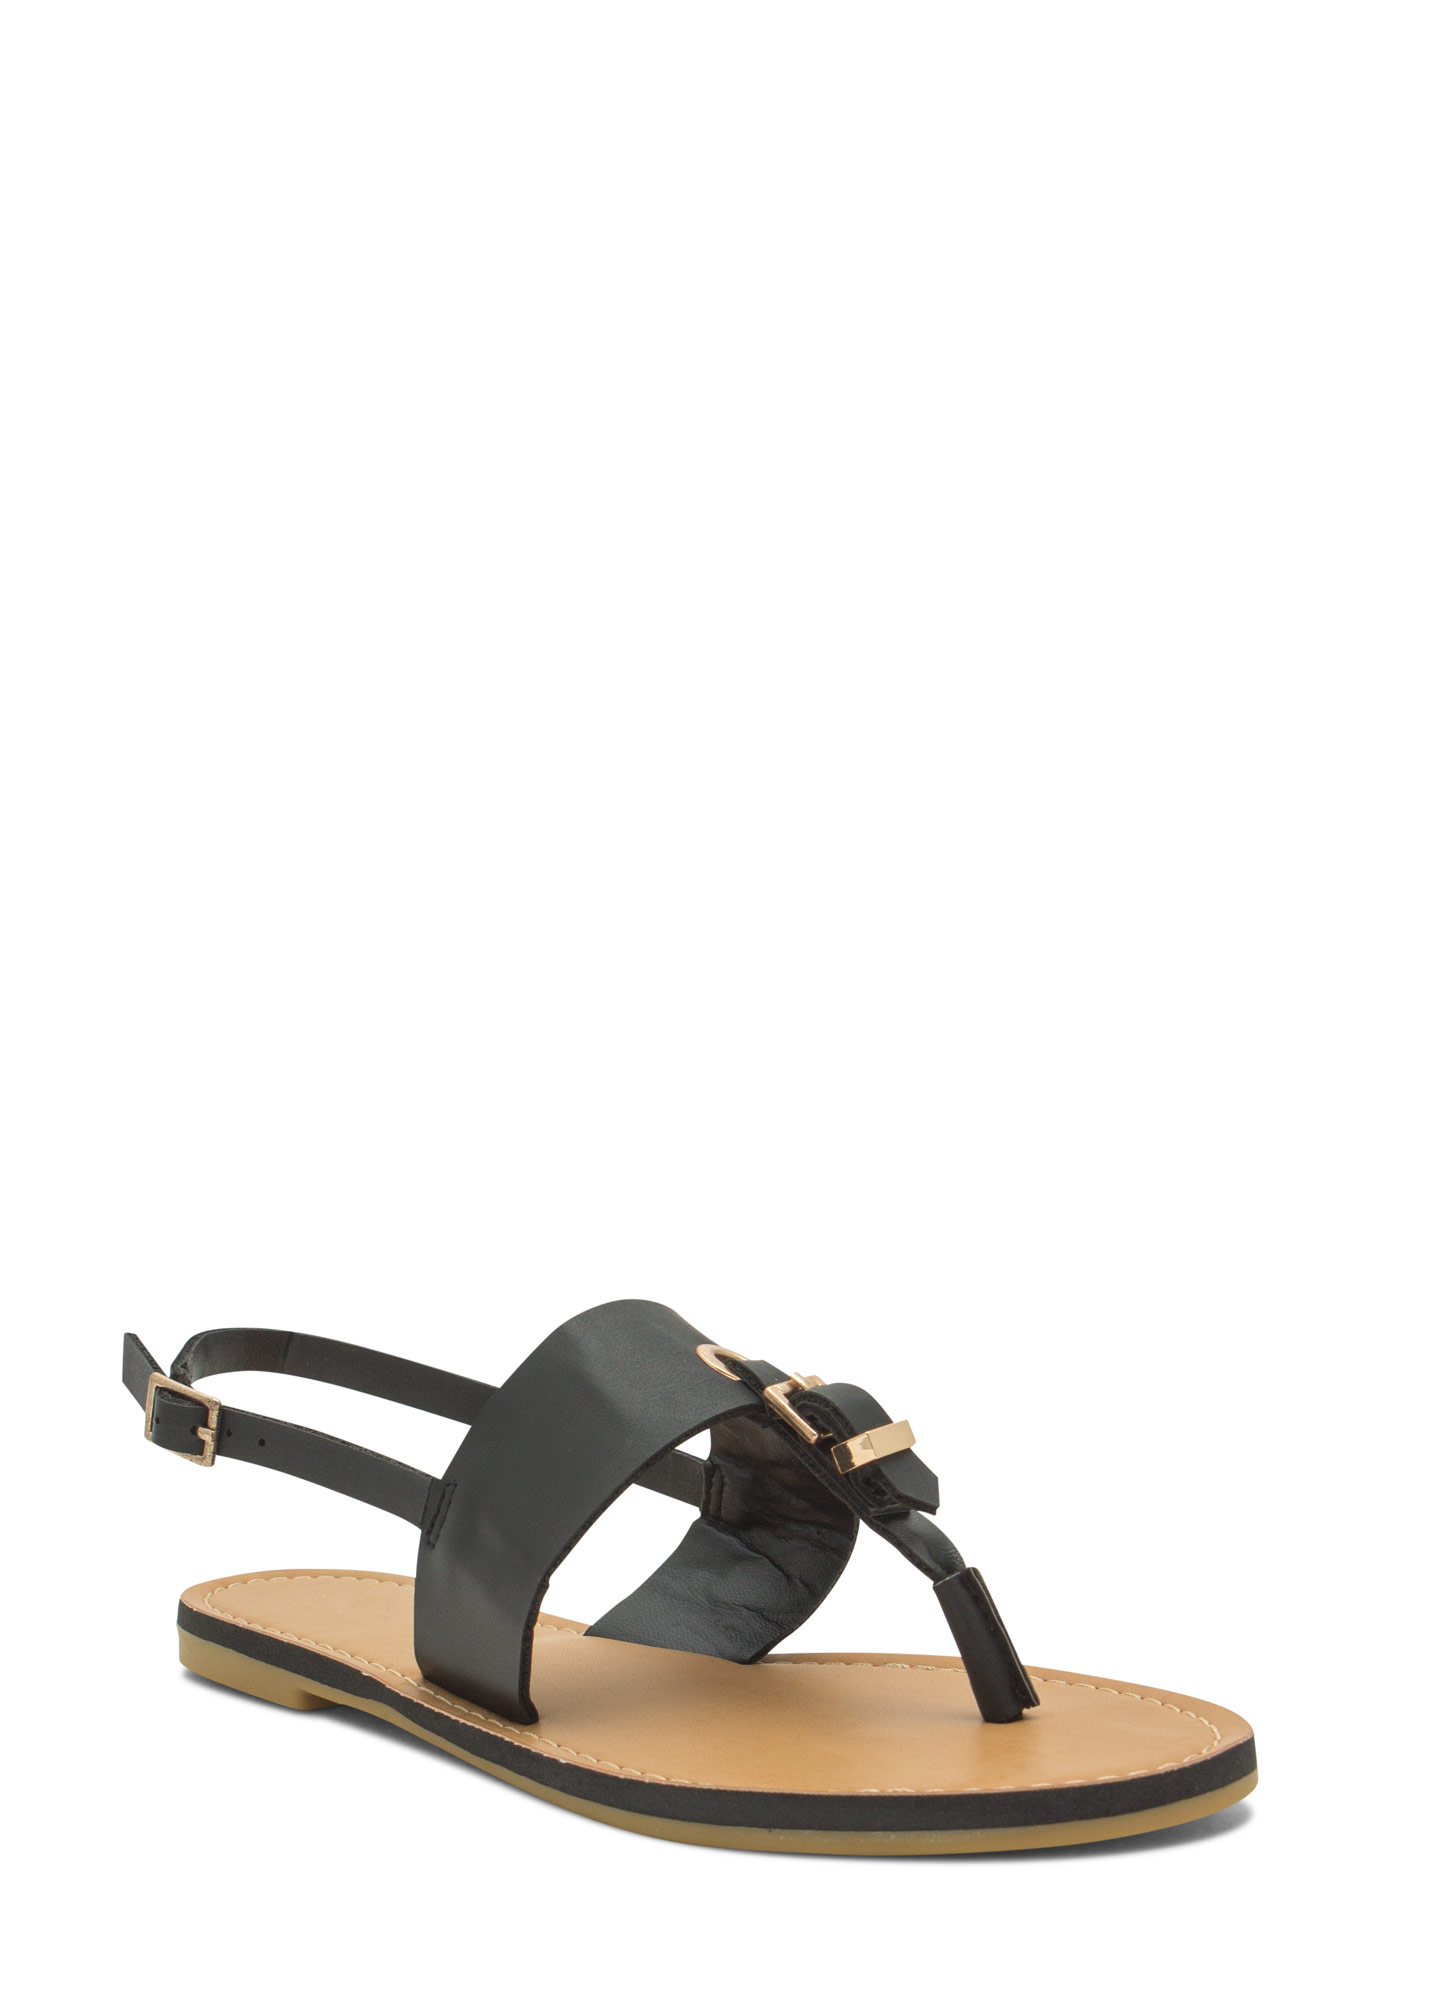 All Buckled In Faux Leather Thong Sandals BLACK